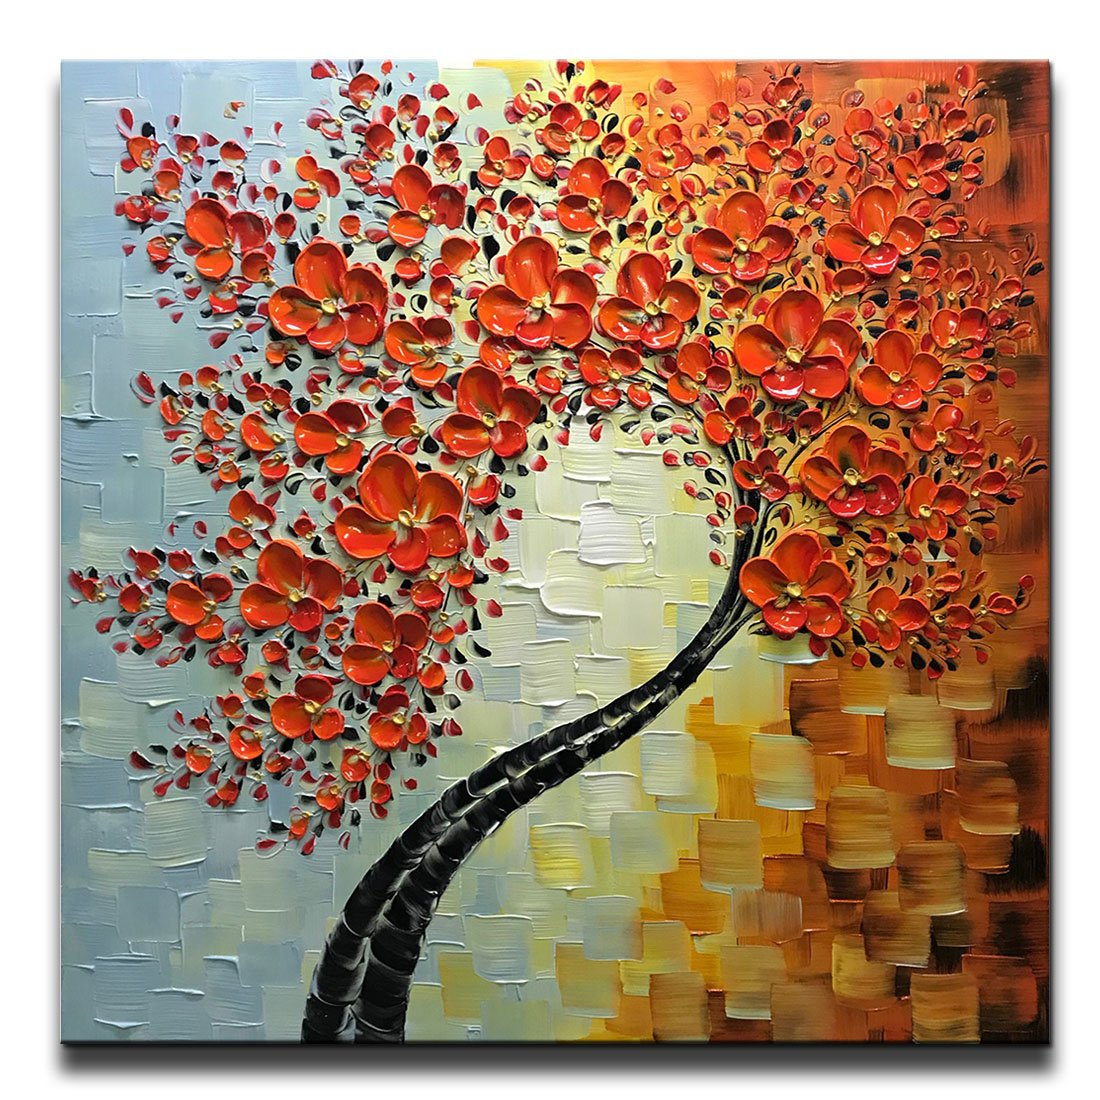 6cfbd2c3526f1 Asdam Art Paintings,Red Wall Art Abstract Tree Canvas Painting Flower  Artwork for Living Room Framed 32x32 Inch